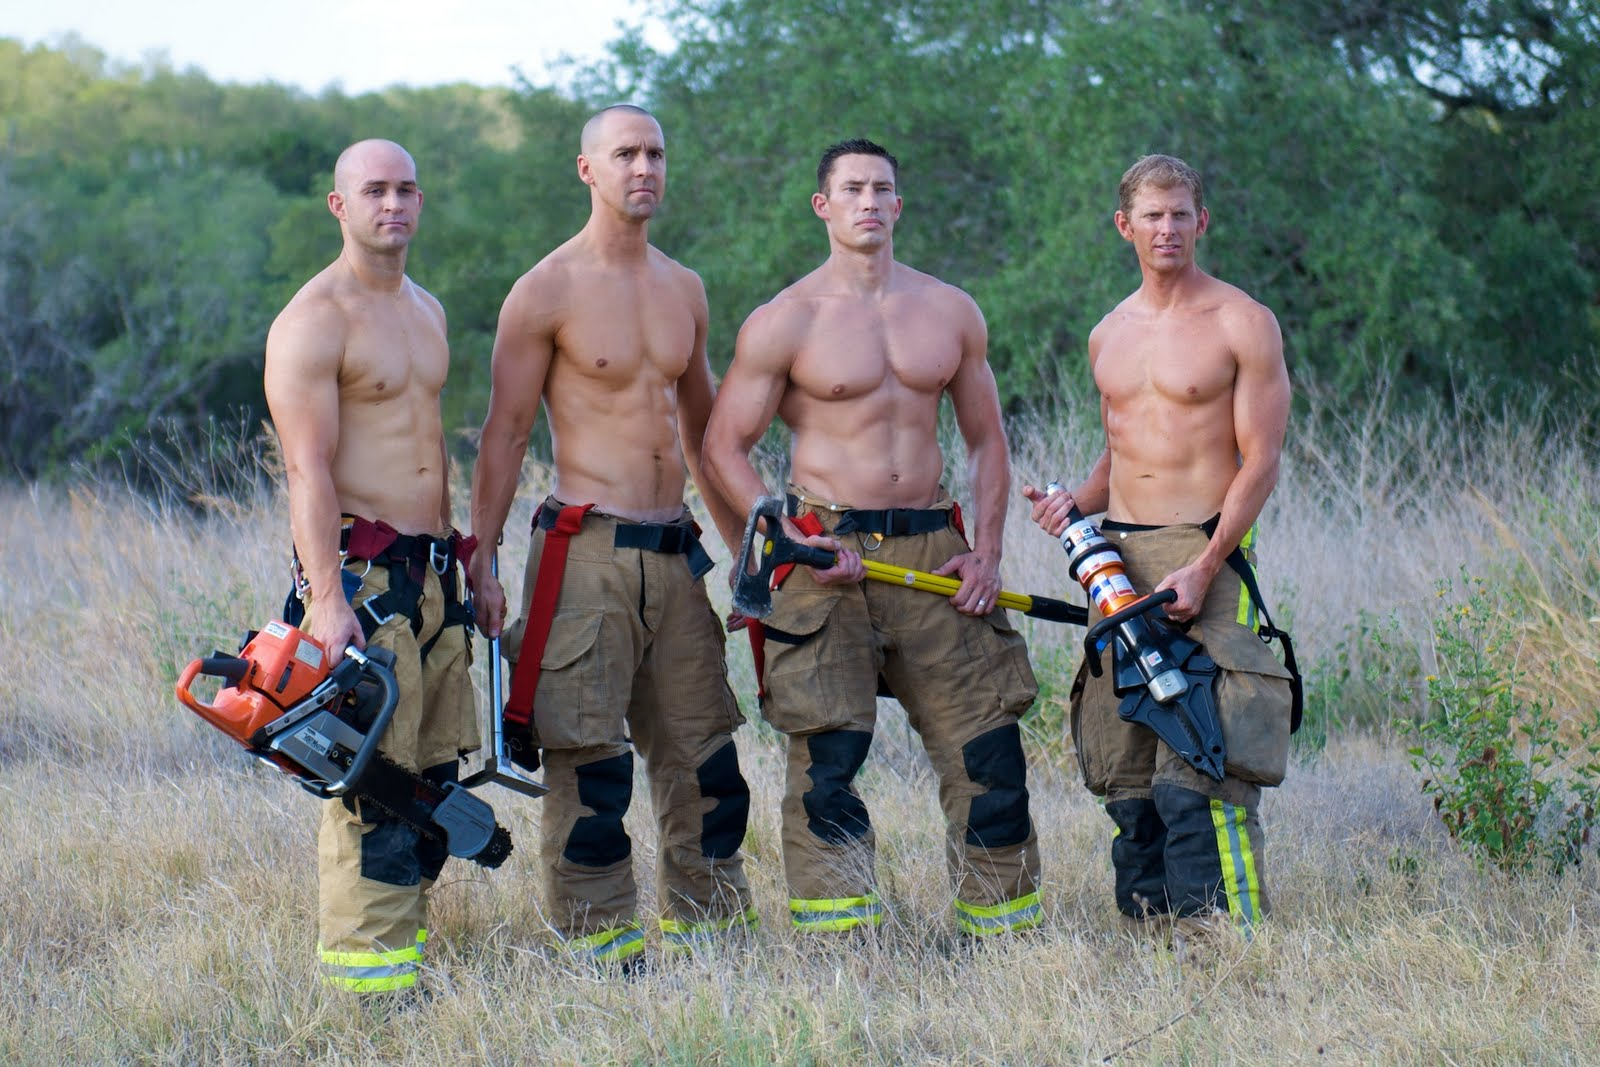 Hot Guys Nude: Hot Firefighters